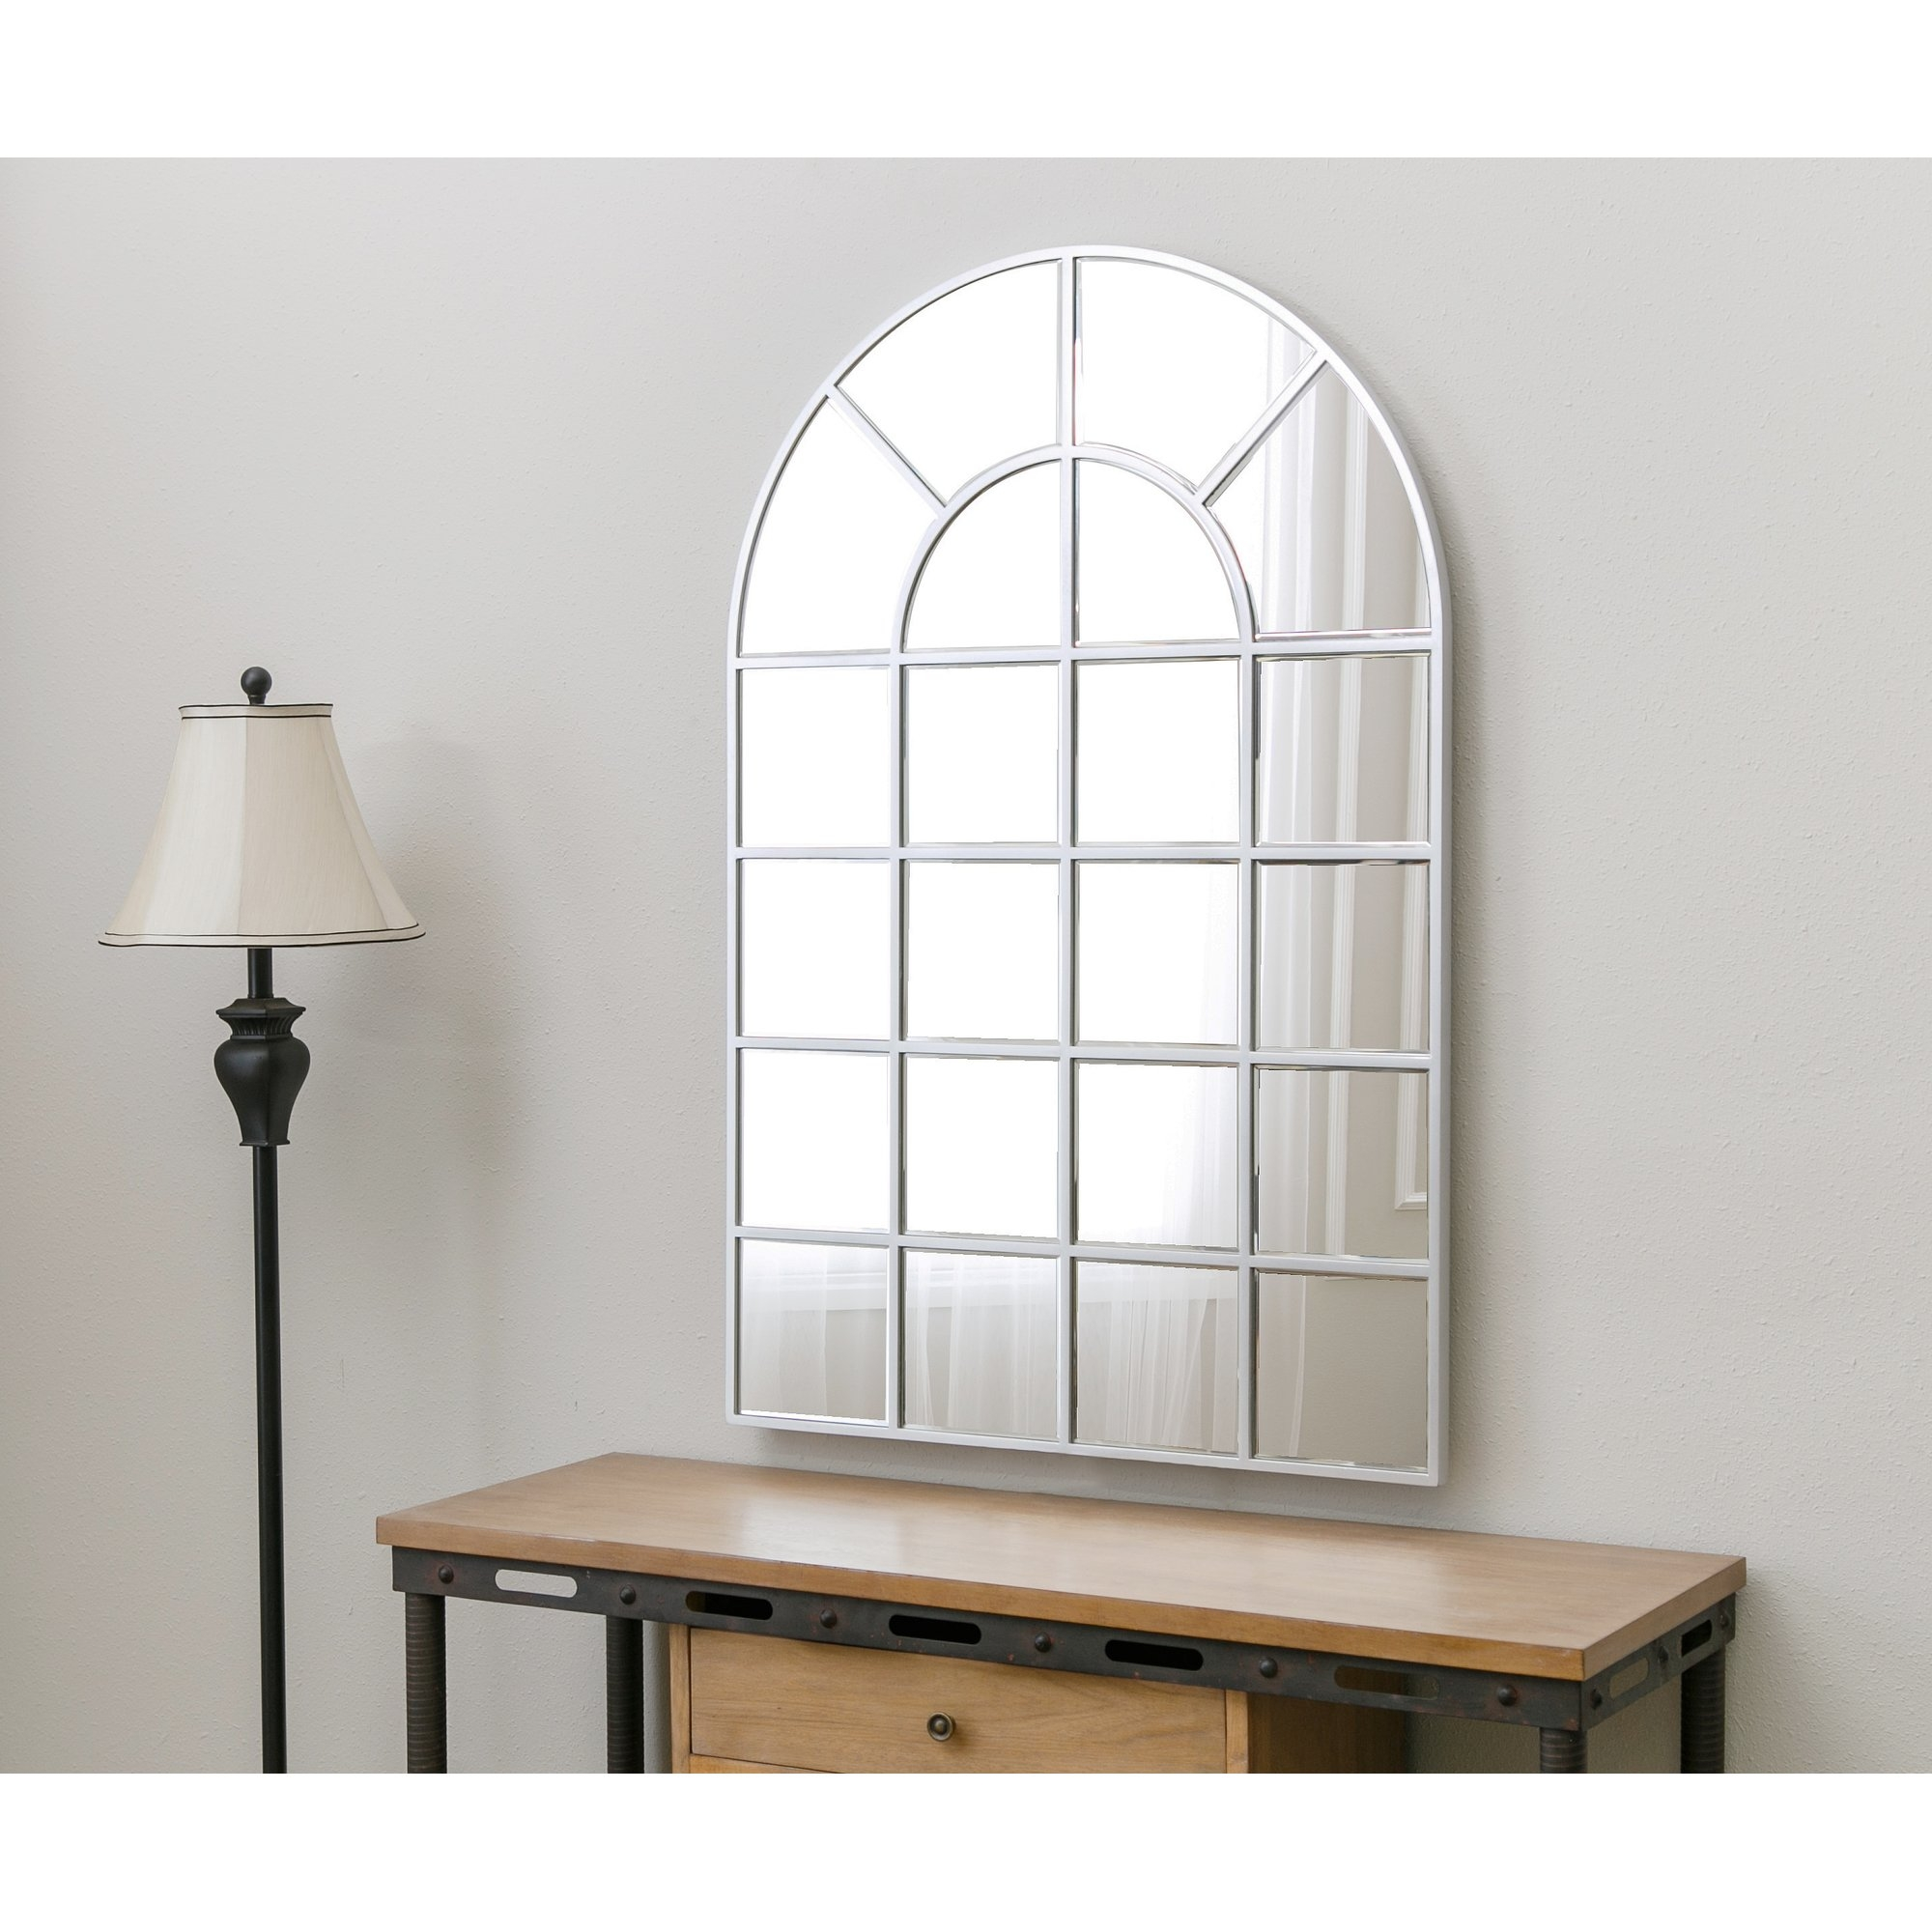 Red Barrel Studio Arched Wall Mirror Reviews Wayfair In Arched Wall Mirror (View 14 of 15)